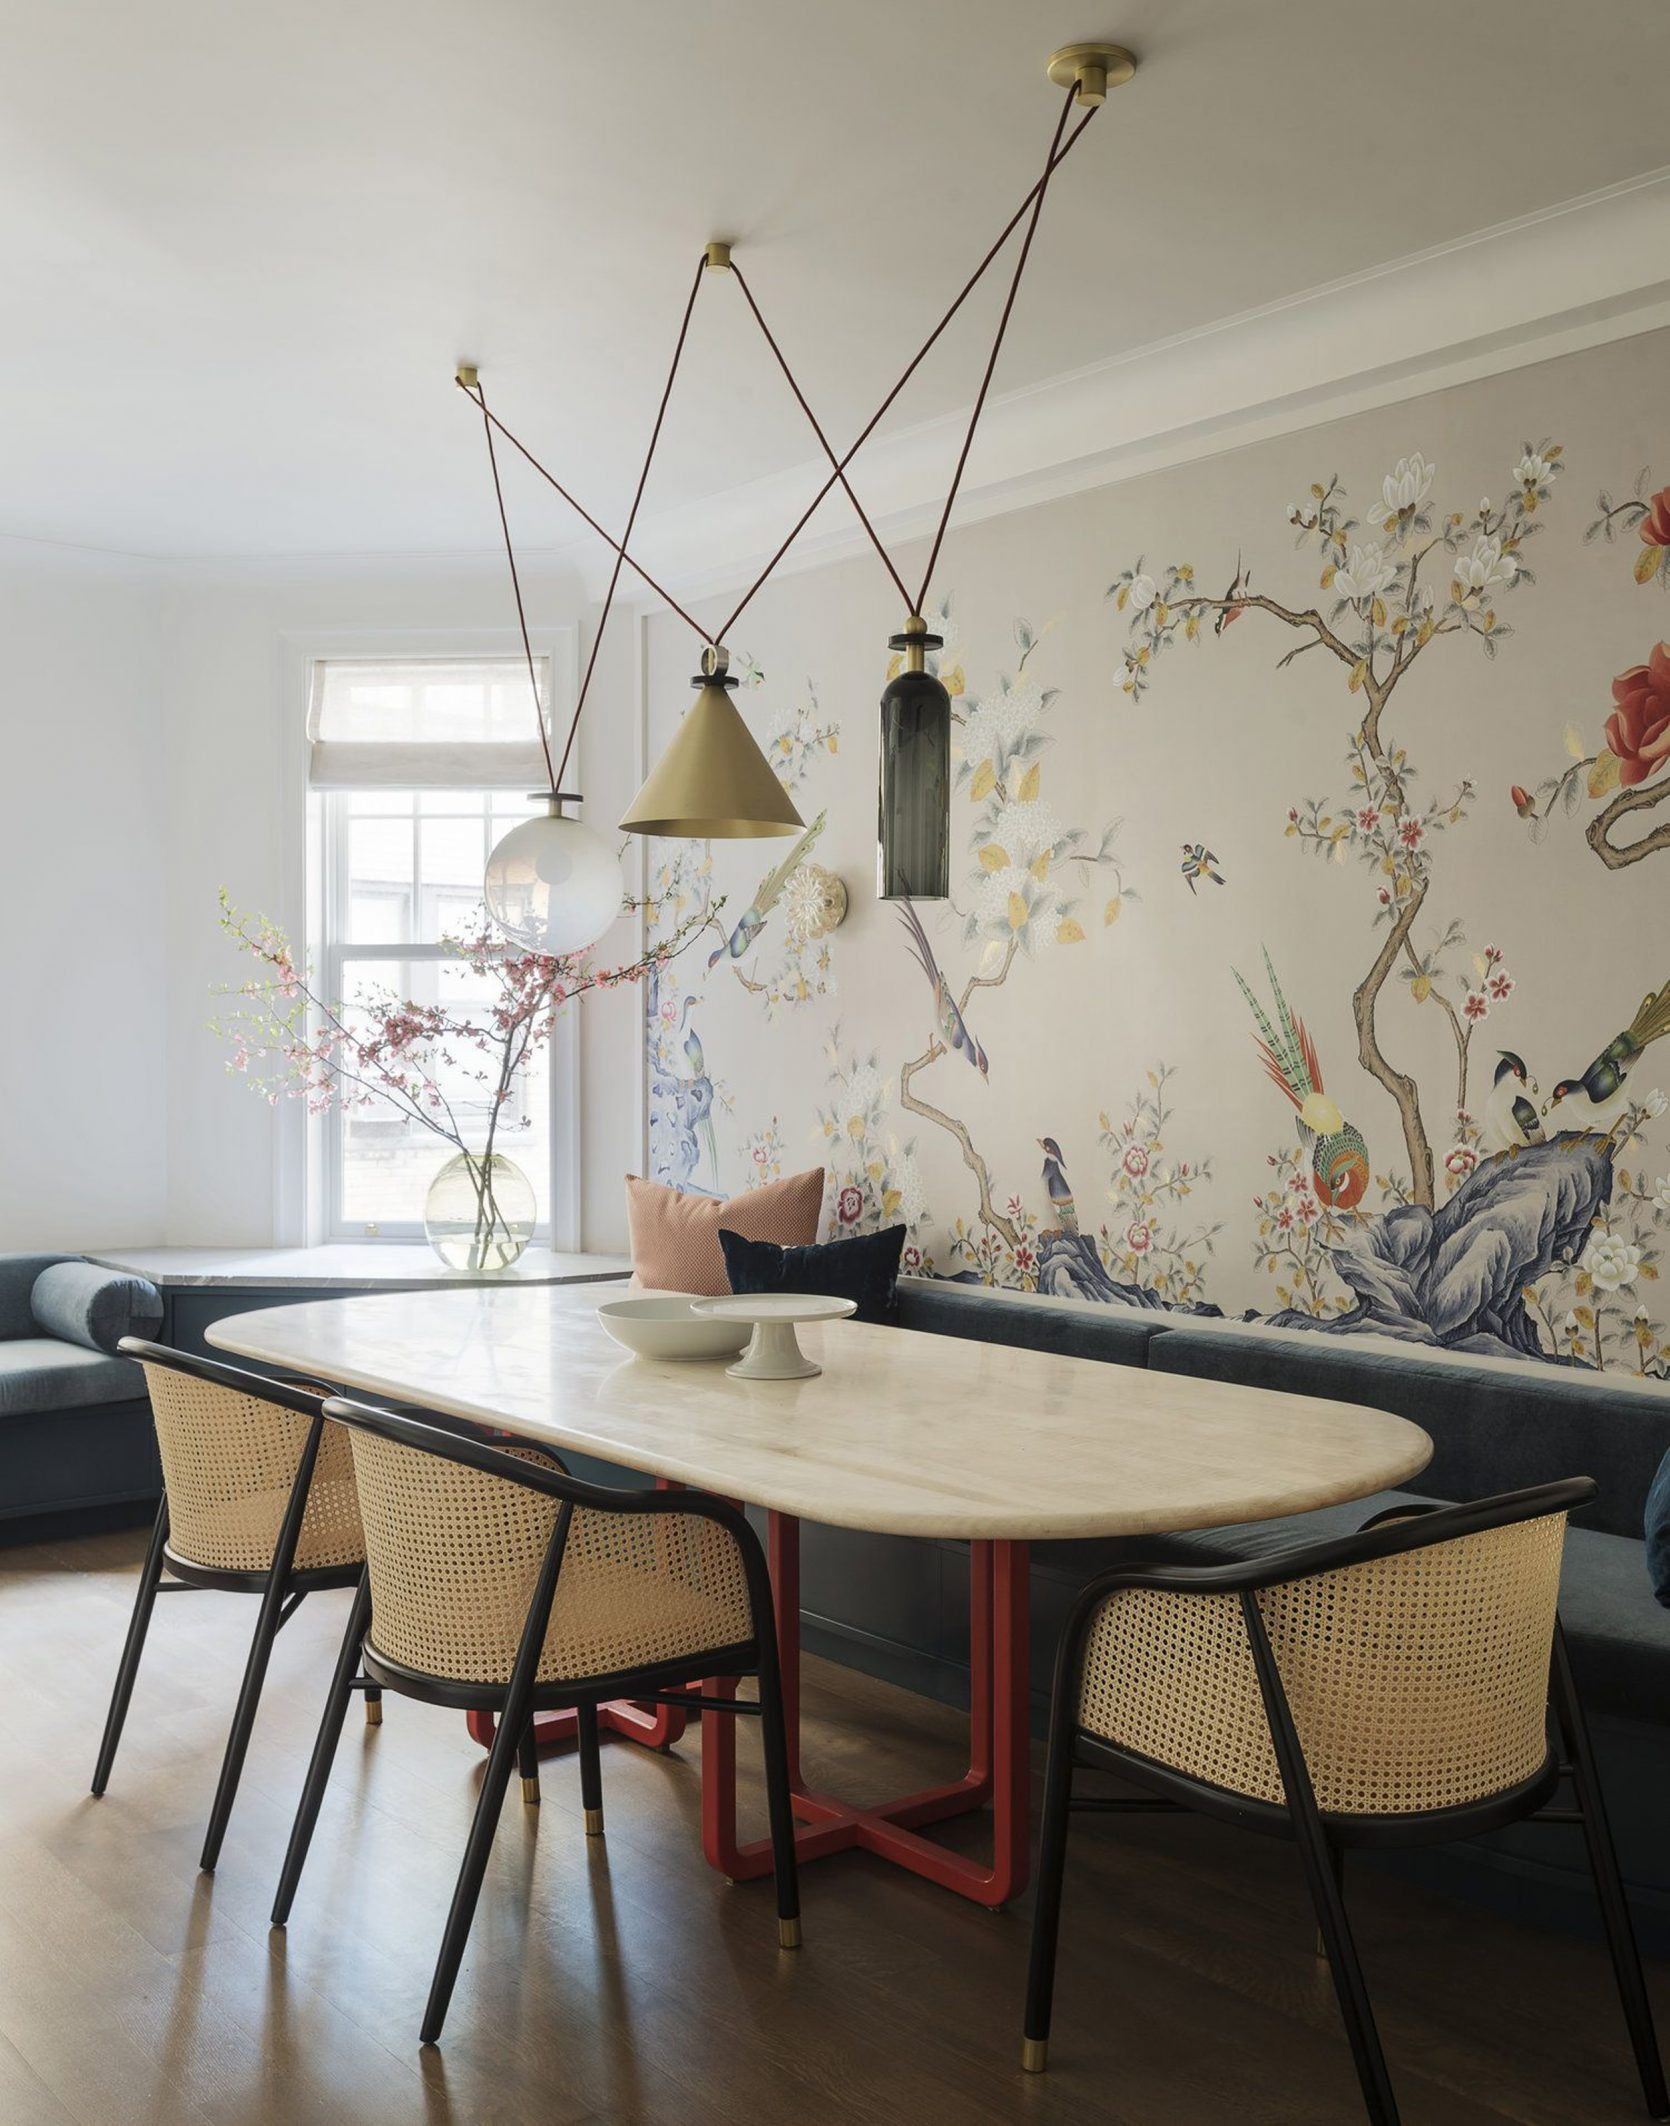 Trends Eetkamer 2018 Design Trends Chinoiserie Is Making A Comeback